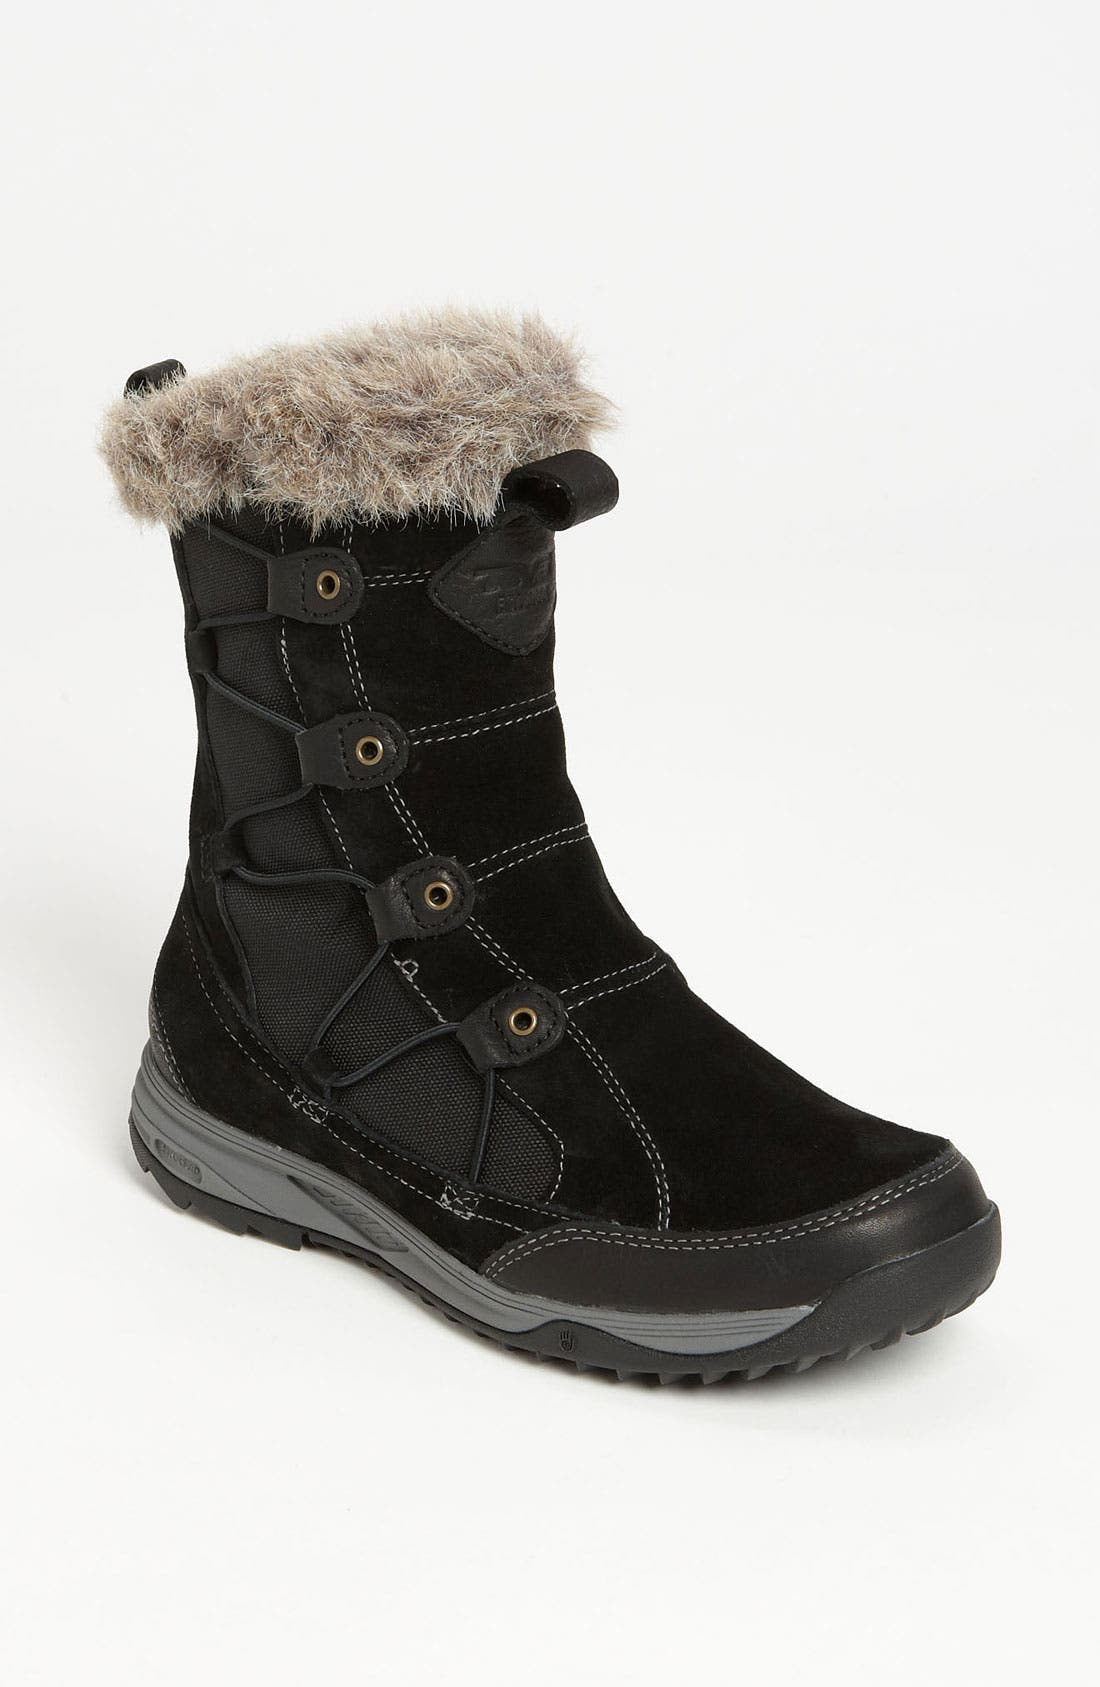 Main Image - Teva 'Little Cloud' Waterproof Boot